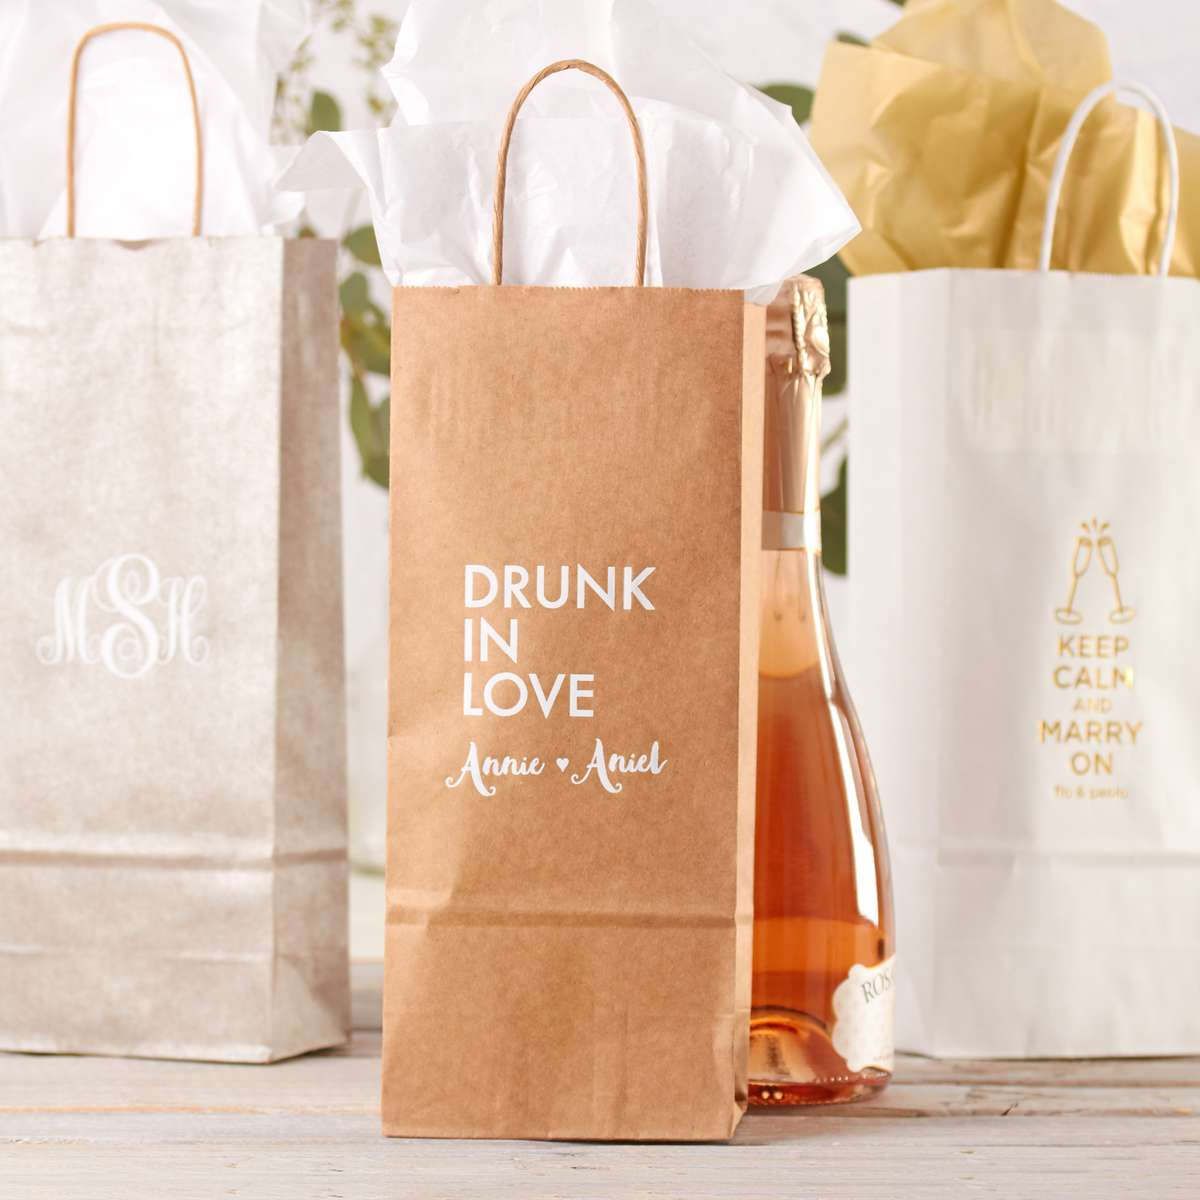 custom printed gift bags for wedding and party favors